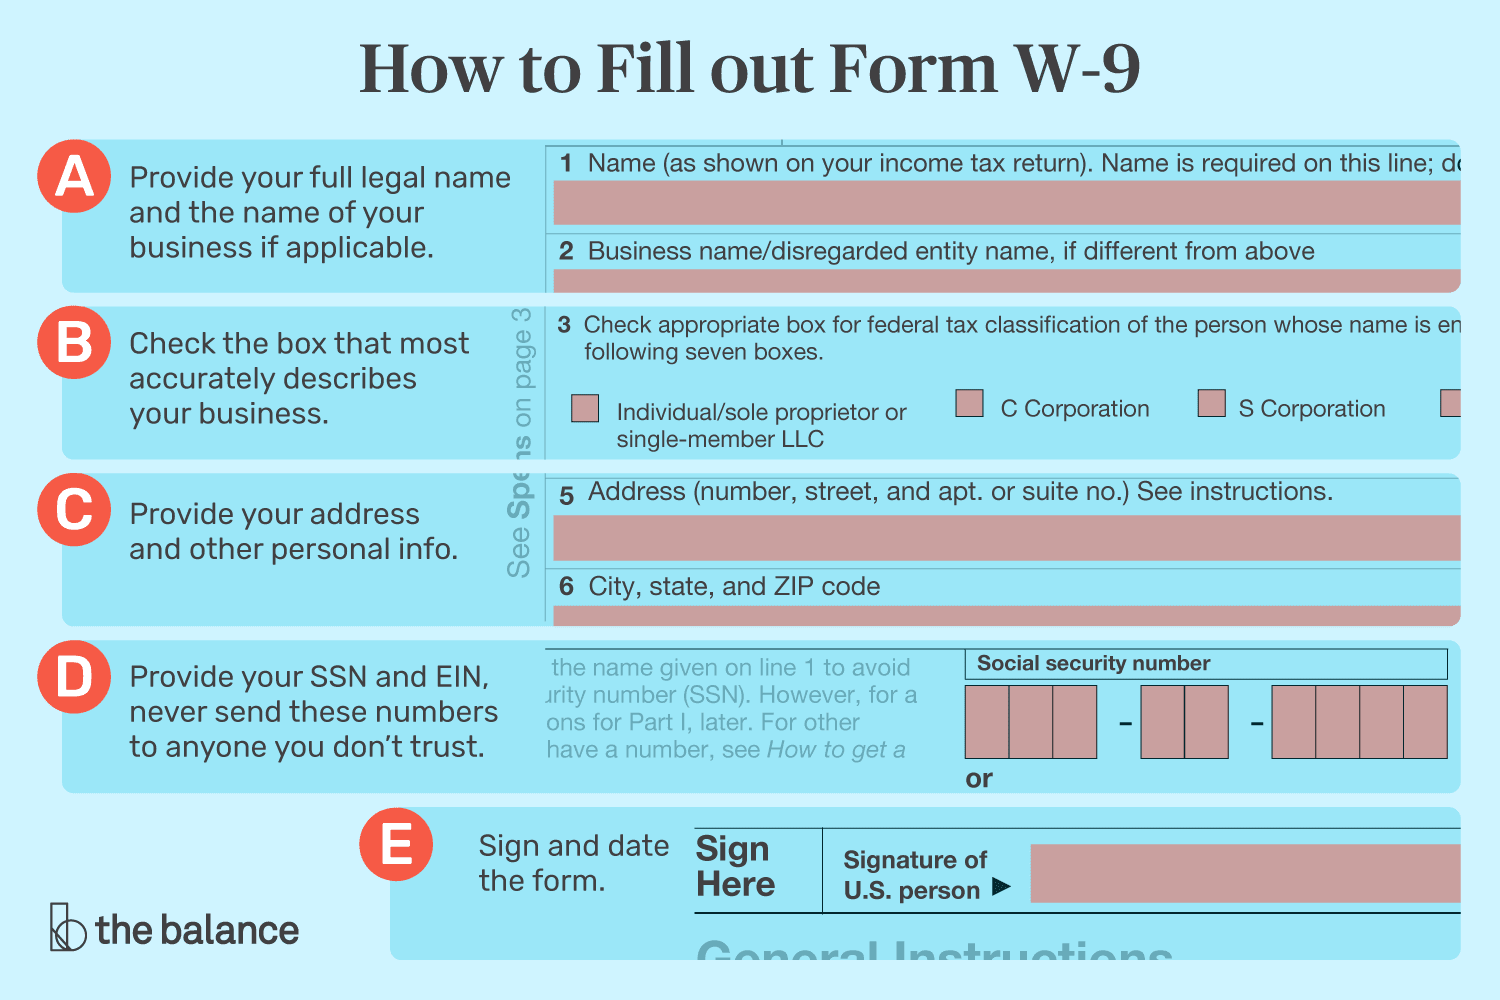 What Is Irs Form W 9 And How Should You Fill It Out